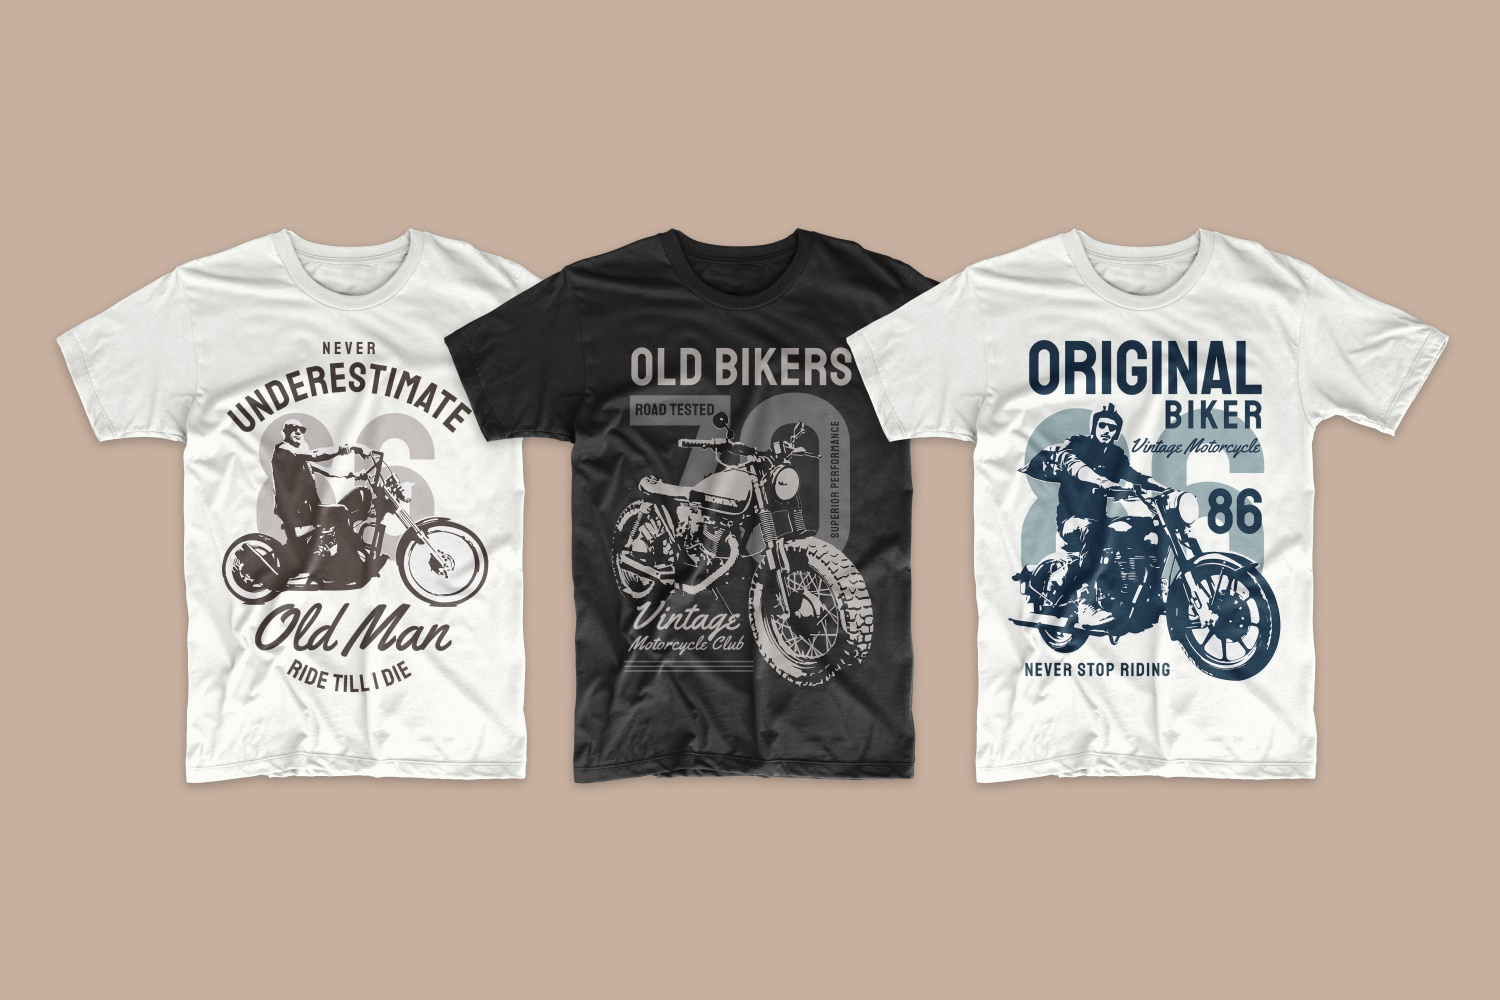 Classic T-shirts with retro motorcycle graphics.